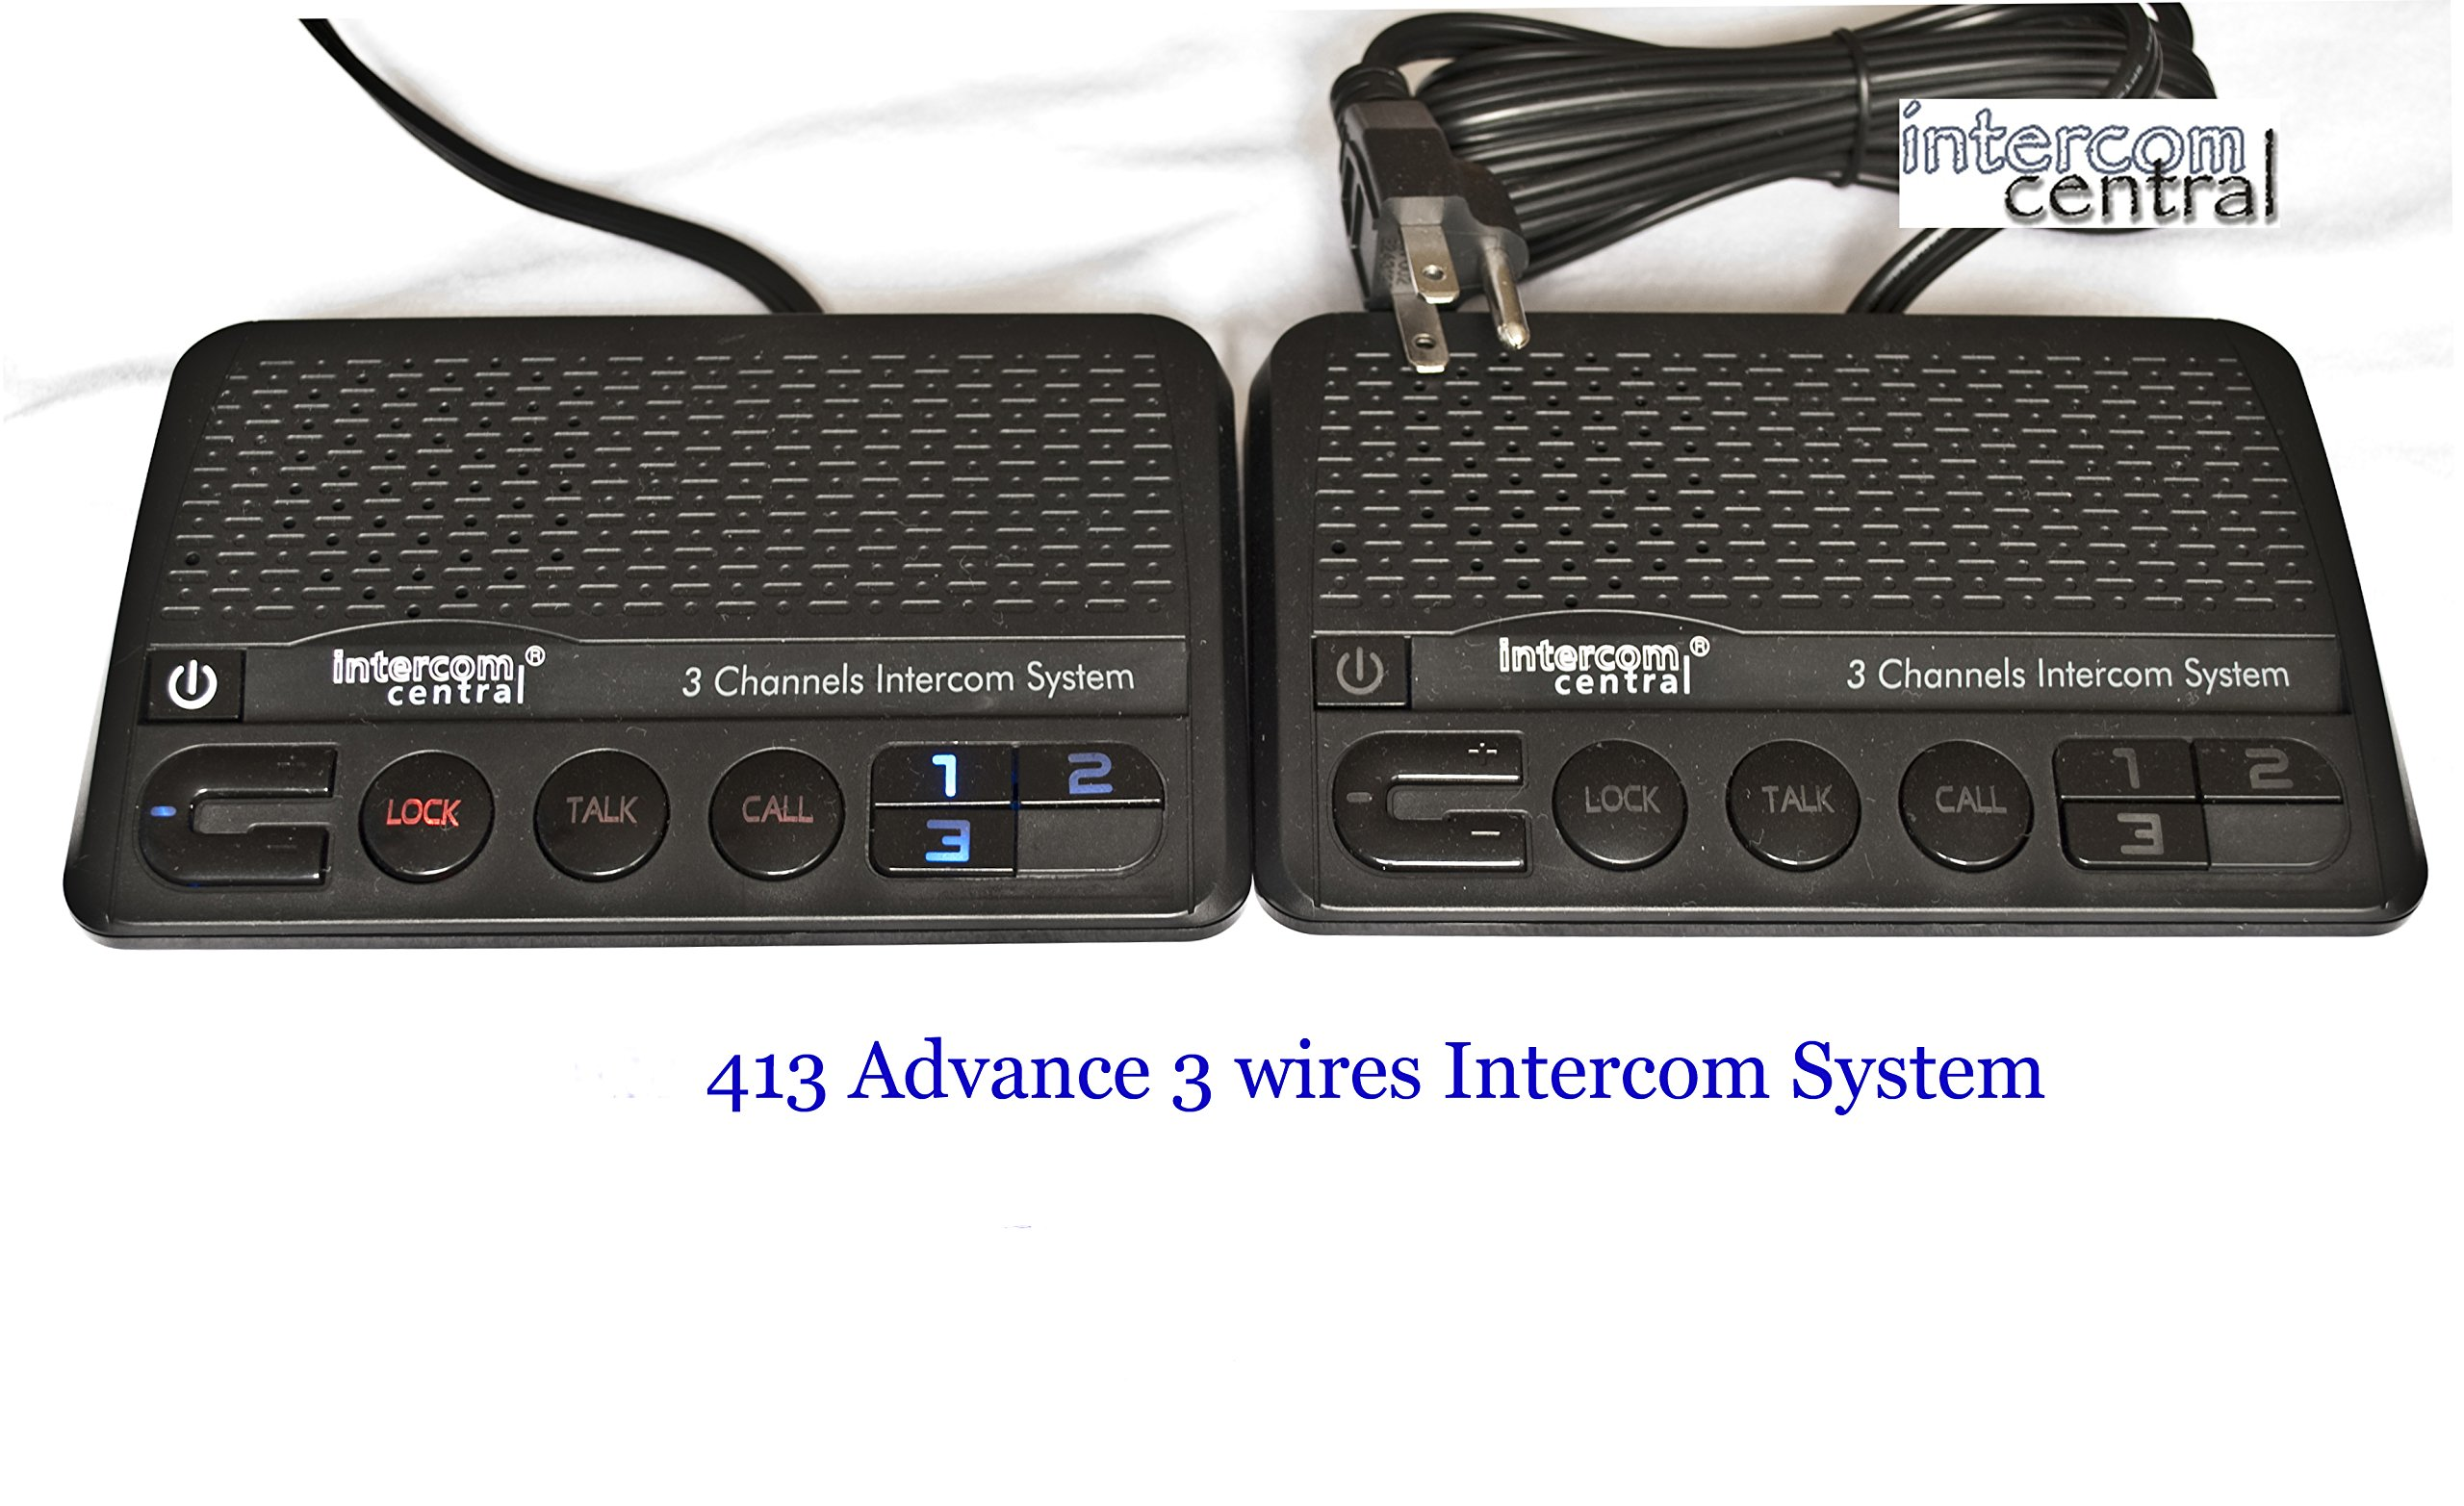 Intercom Central 413 - Three Channels HOME Power-line Intercom System, 3 Wire, Black, Two Stations Set